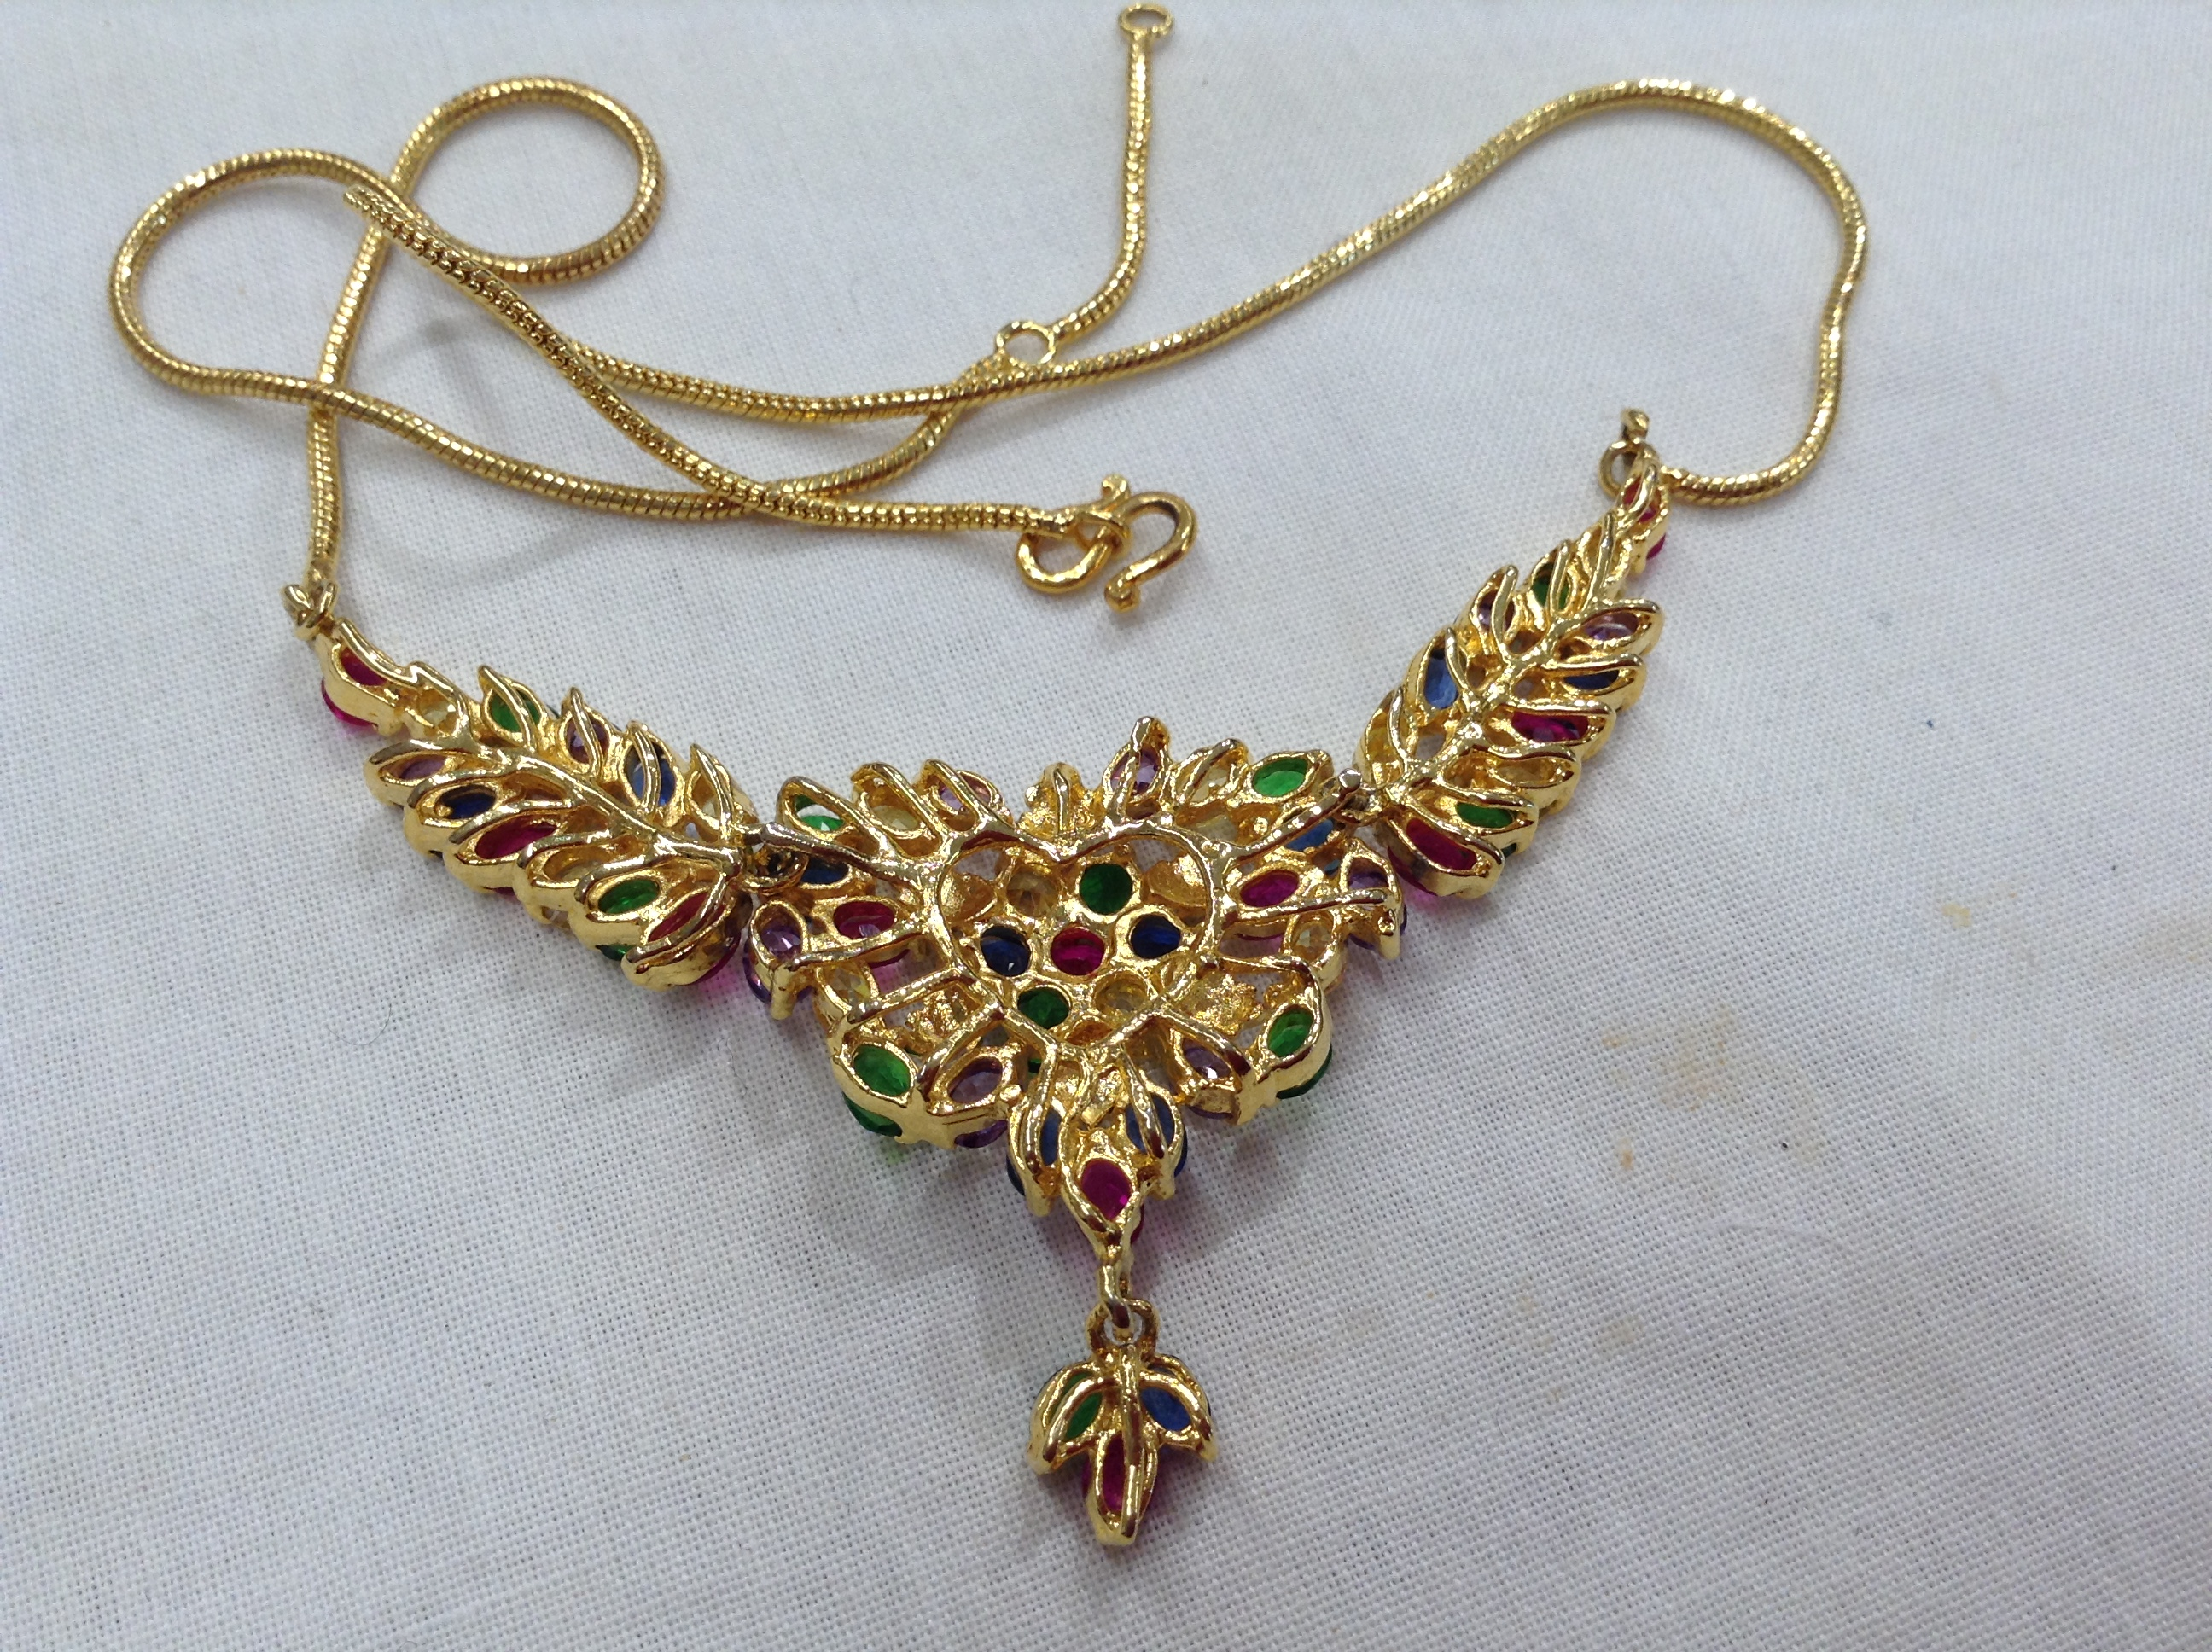 indian marriage necklace 22kt gold kundan necklace sets, 22kt gold patta haar, 22kt gold necklace sets, bridal collection, nizam collection, rani haar,kundan patta-haar necklace set.